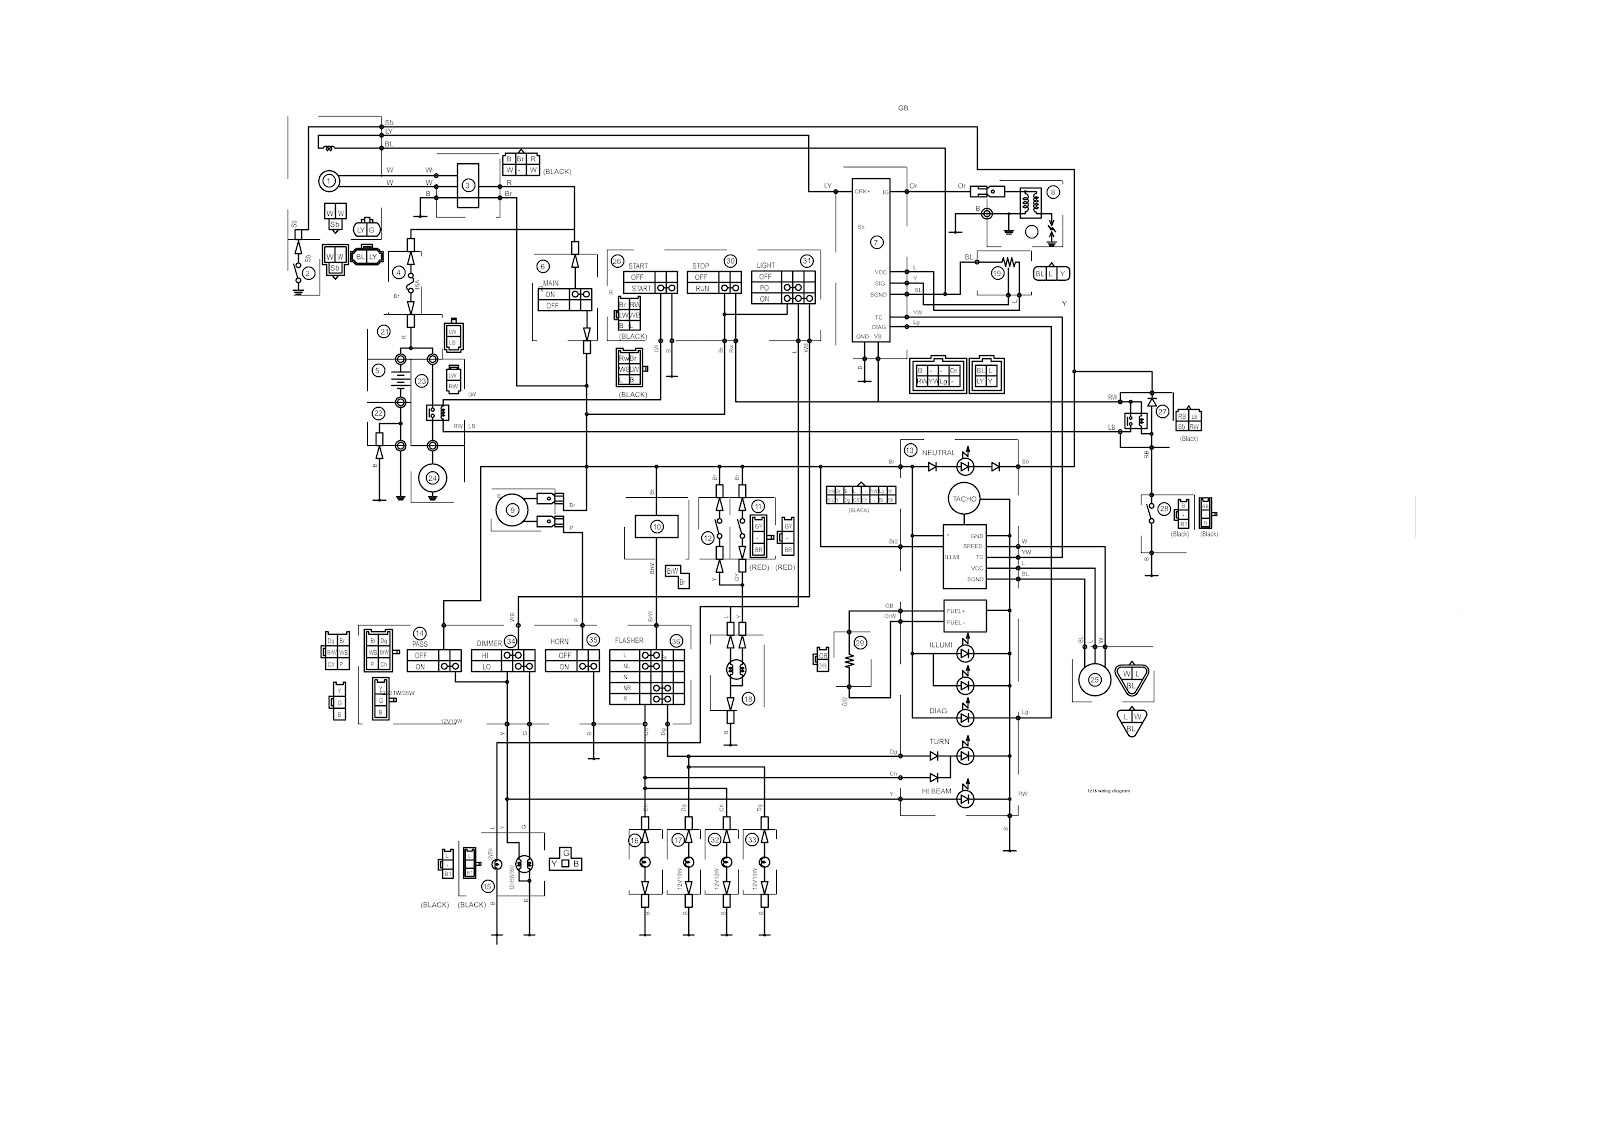 Mio Mxi Wiring Diagram mio soul cdi socket diagram yamaha ... Yamaha Mio Soul I Wiring Diagram on